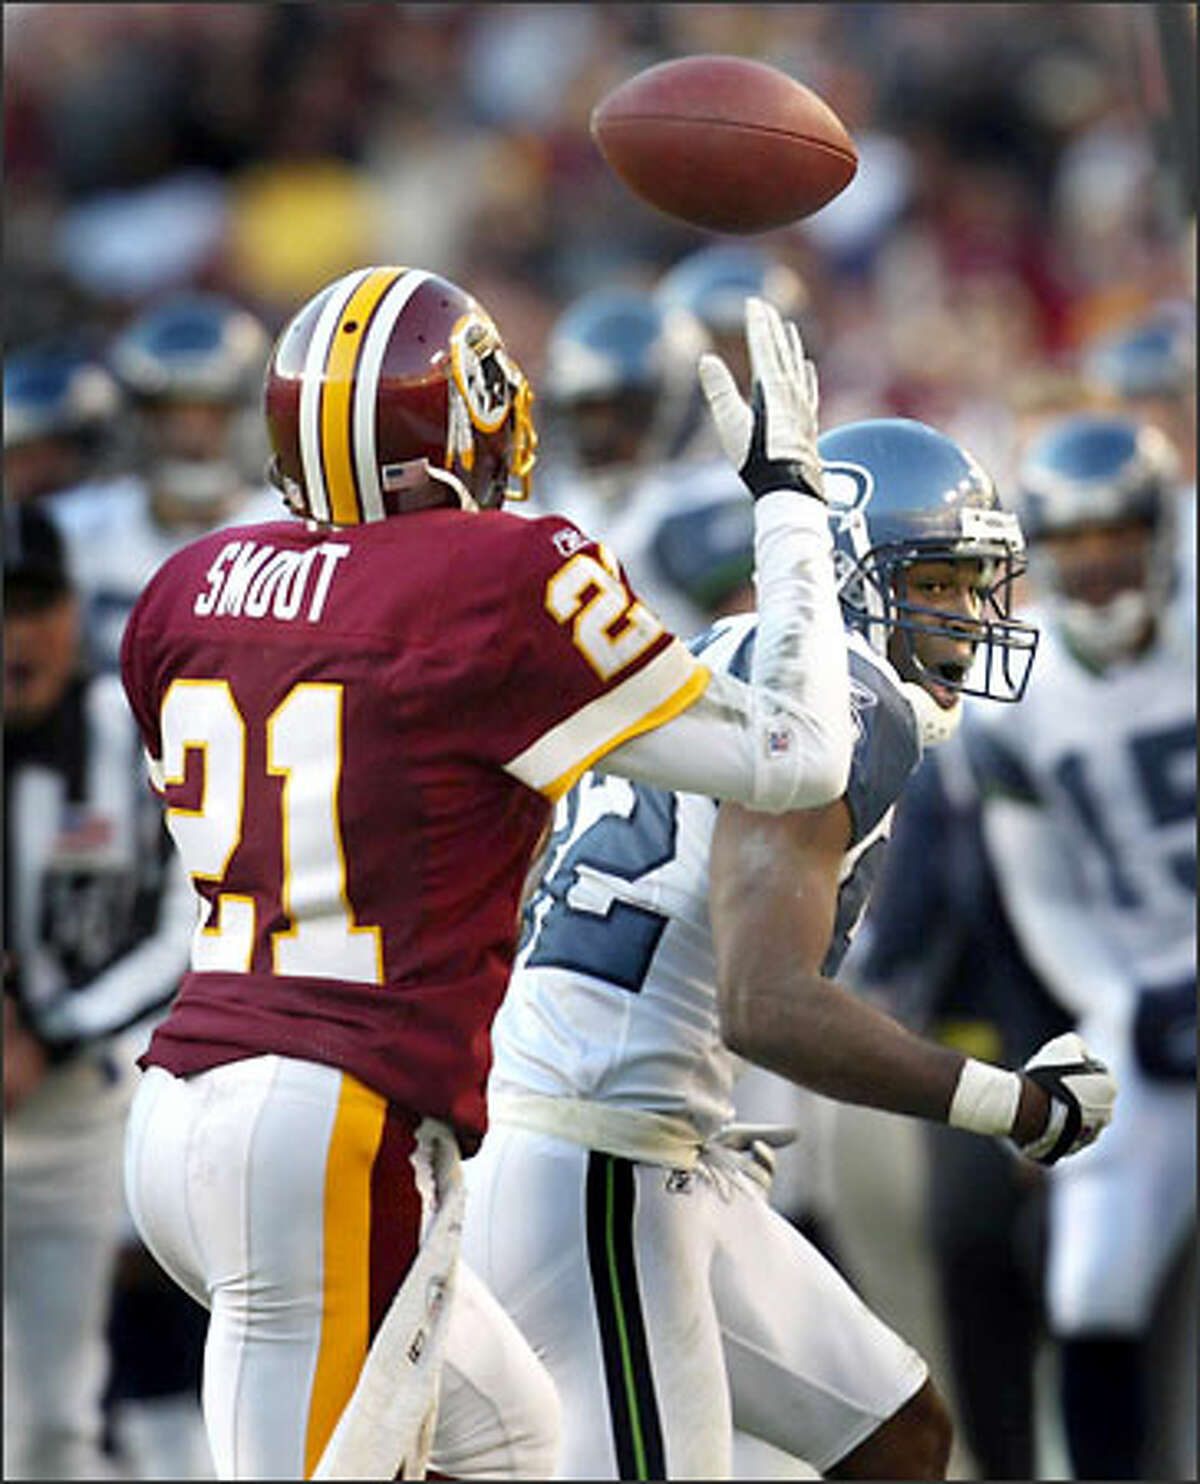 Seahawks' receiver Darrell Jackson reacts as the ball gets away from him in the final minute and finds the hands of Redskins' defensive back Fred Smoot for an interception to seal the Washington victory.